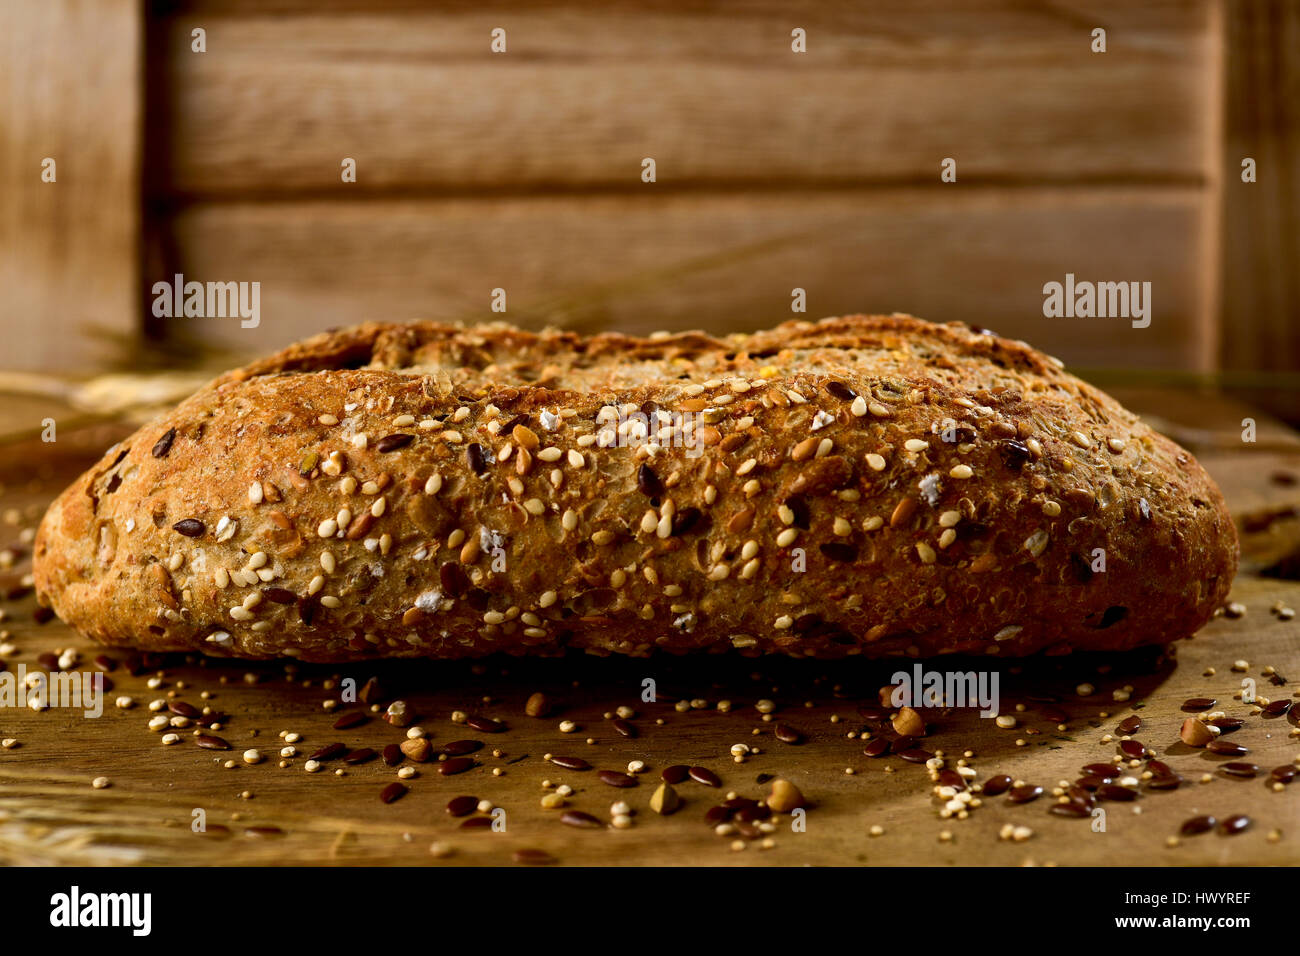 closeup of a wholemeal bread roll topped with different seeds, such as sesame and poppy seeds, on a rustic wooden - Stock Image